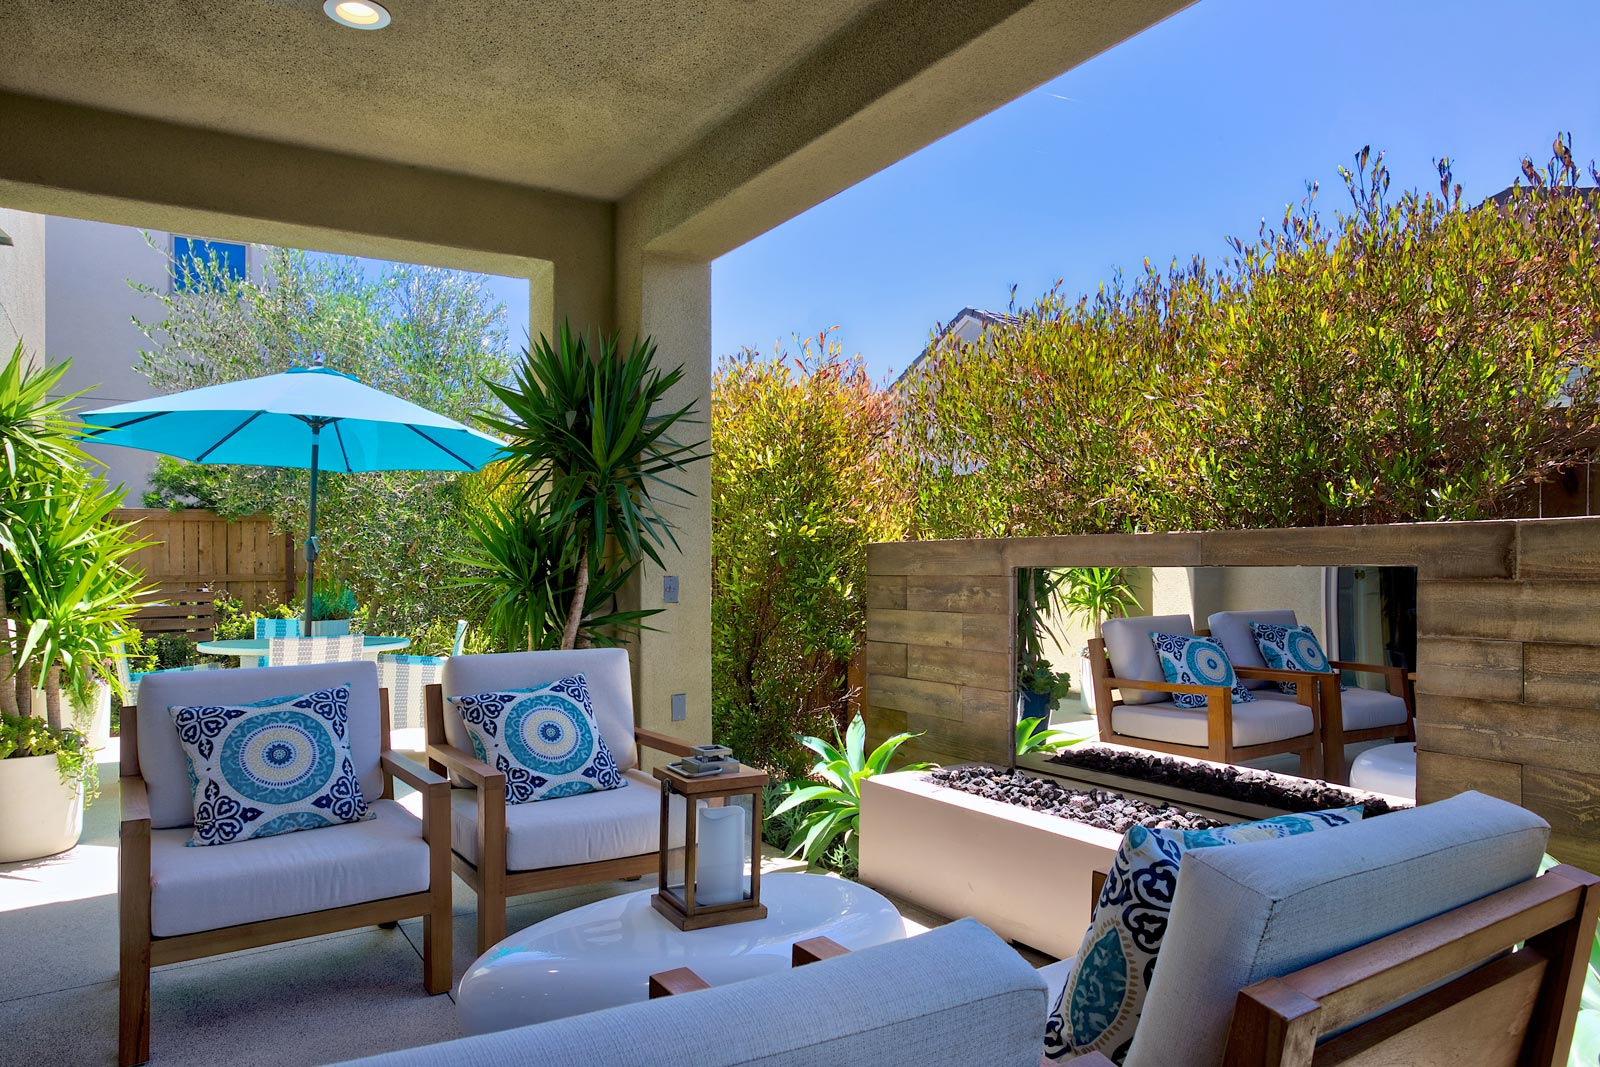 San Diego Home for Sale - Outdoor Living Room